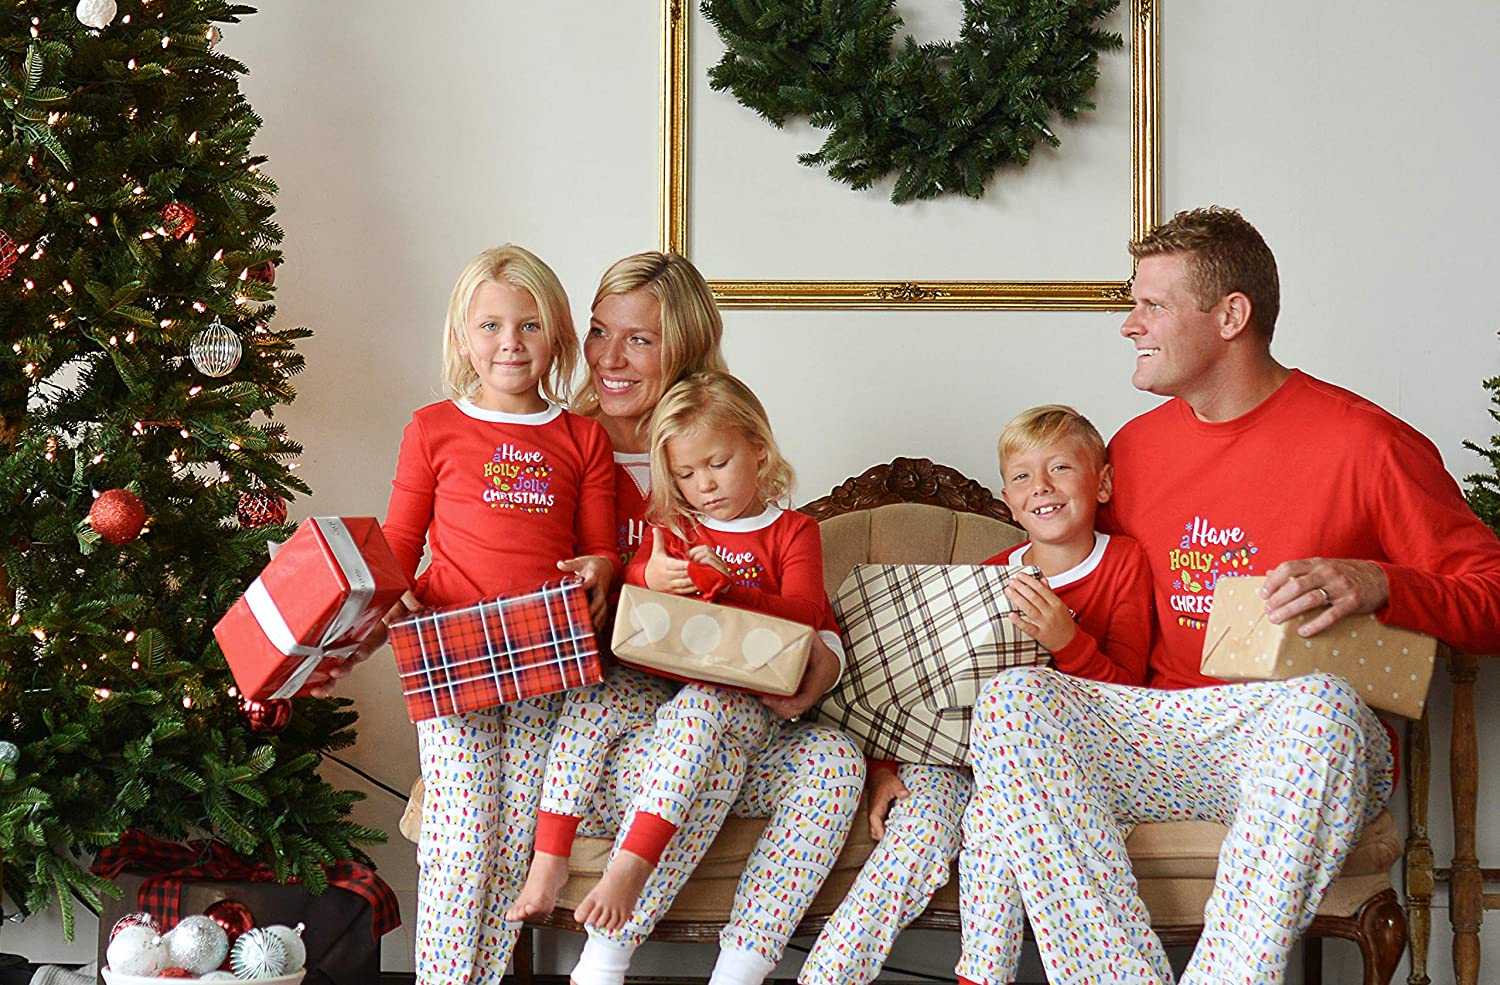 94473bc022 Amazon.com  Sleepyheads Family Matching Holly Jolly Christmas Lights Pajama  PJ Sets  Clothing